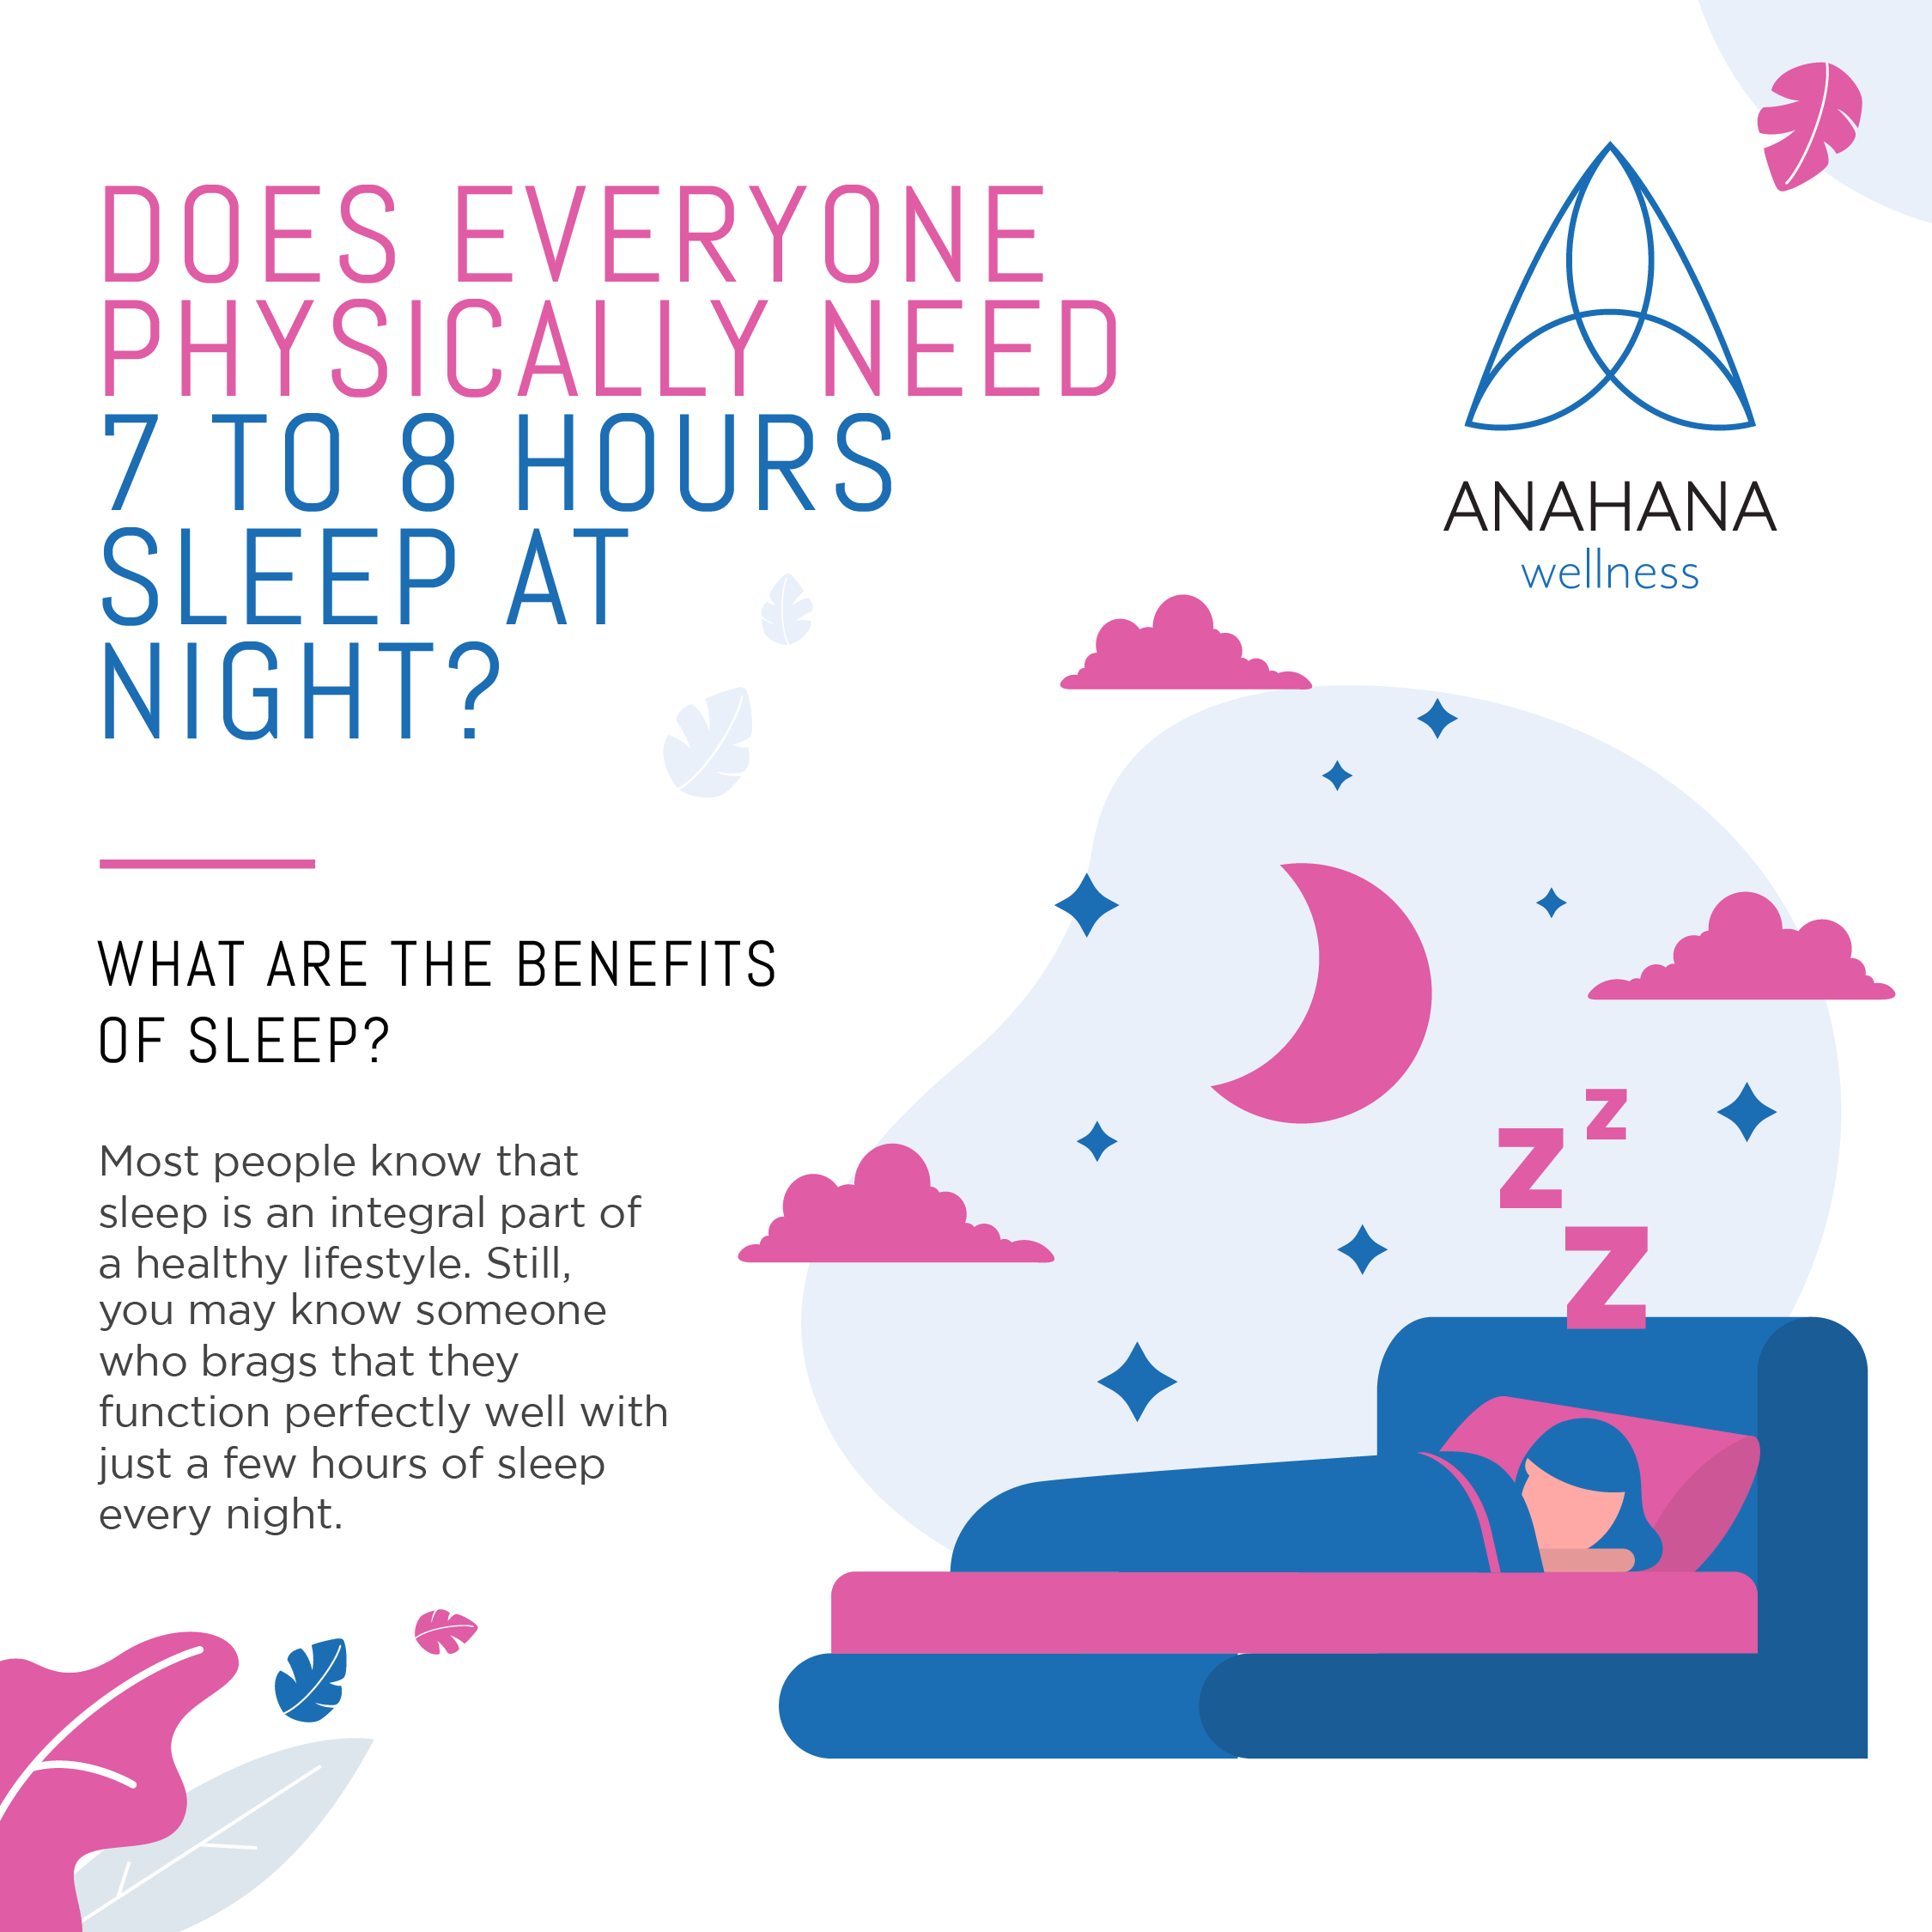 How Does Seven to Eight hours of Sleep Affect Your Body